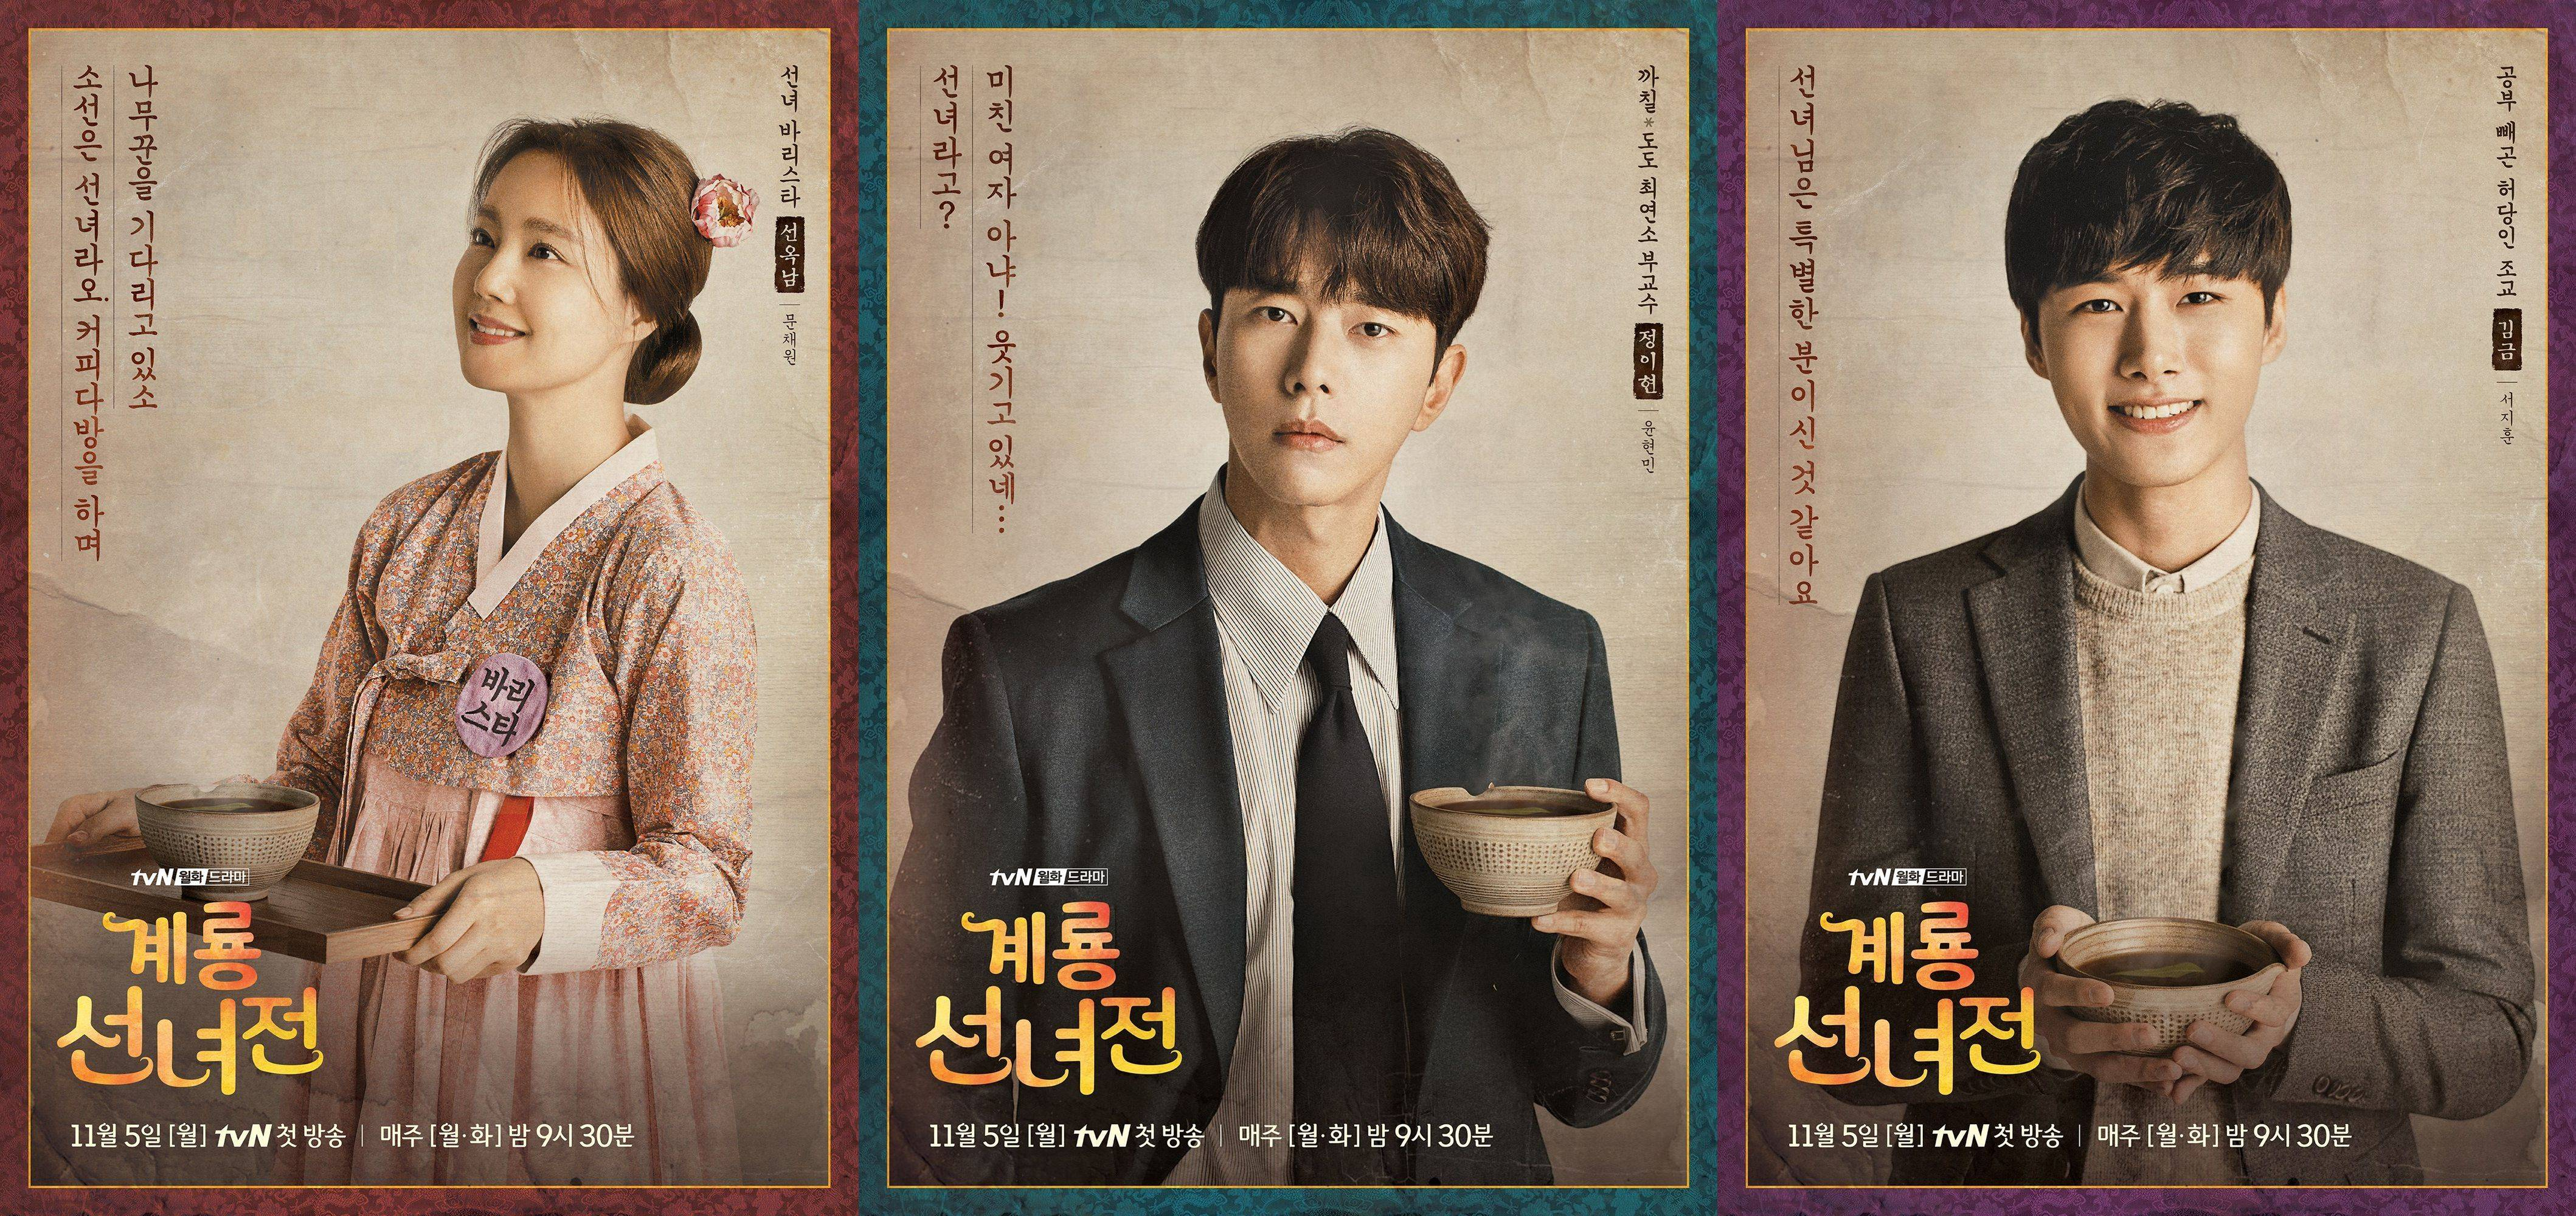 Photos] Character Posters Added for the Upcoming Korean